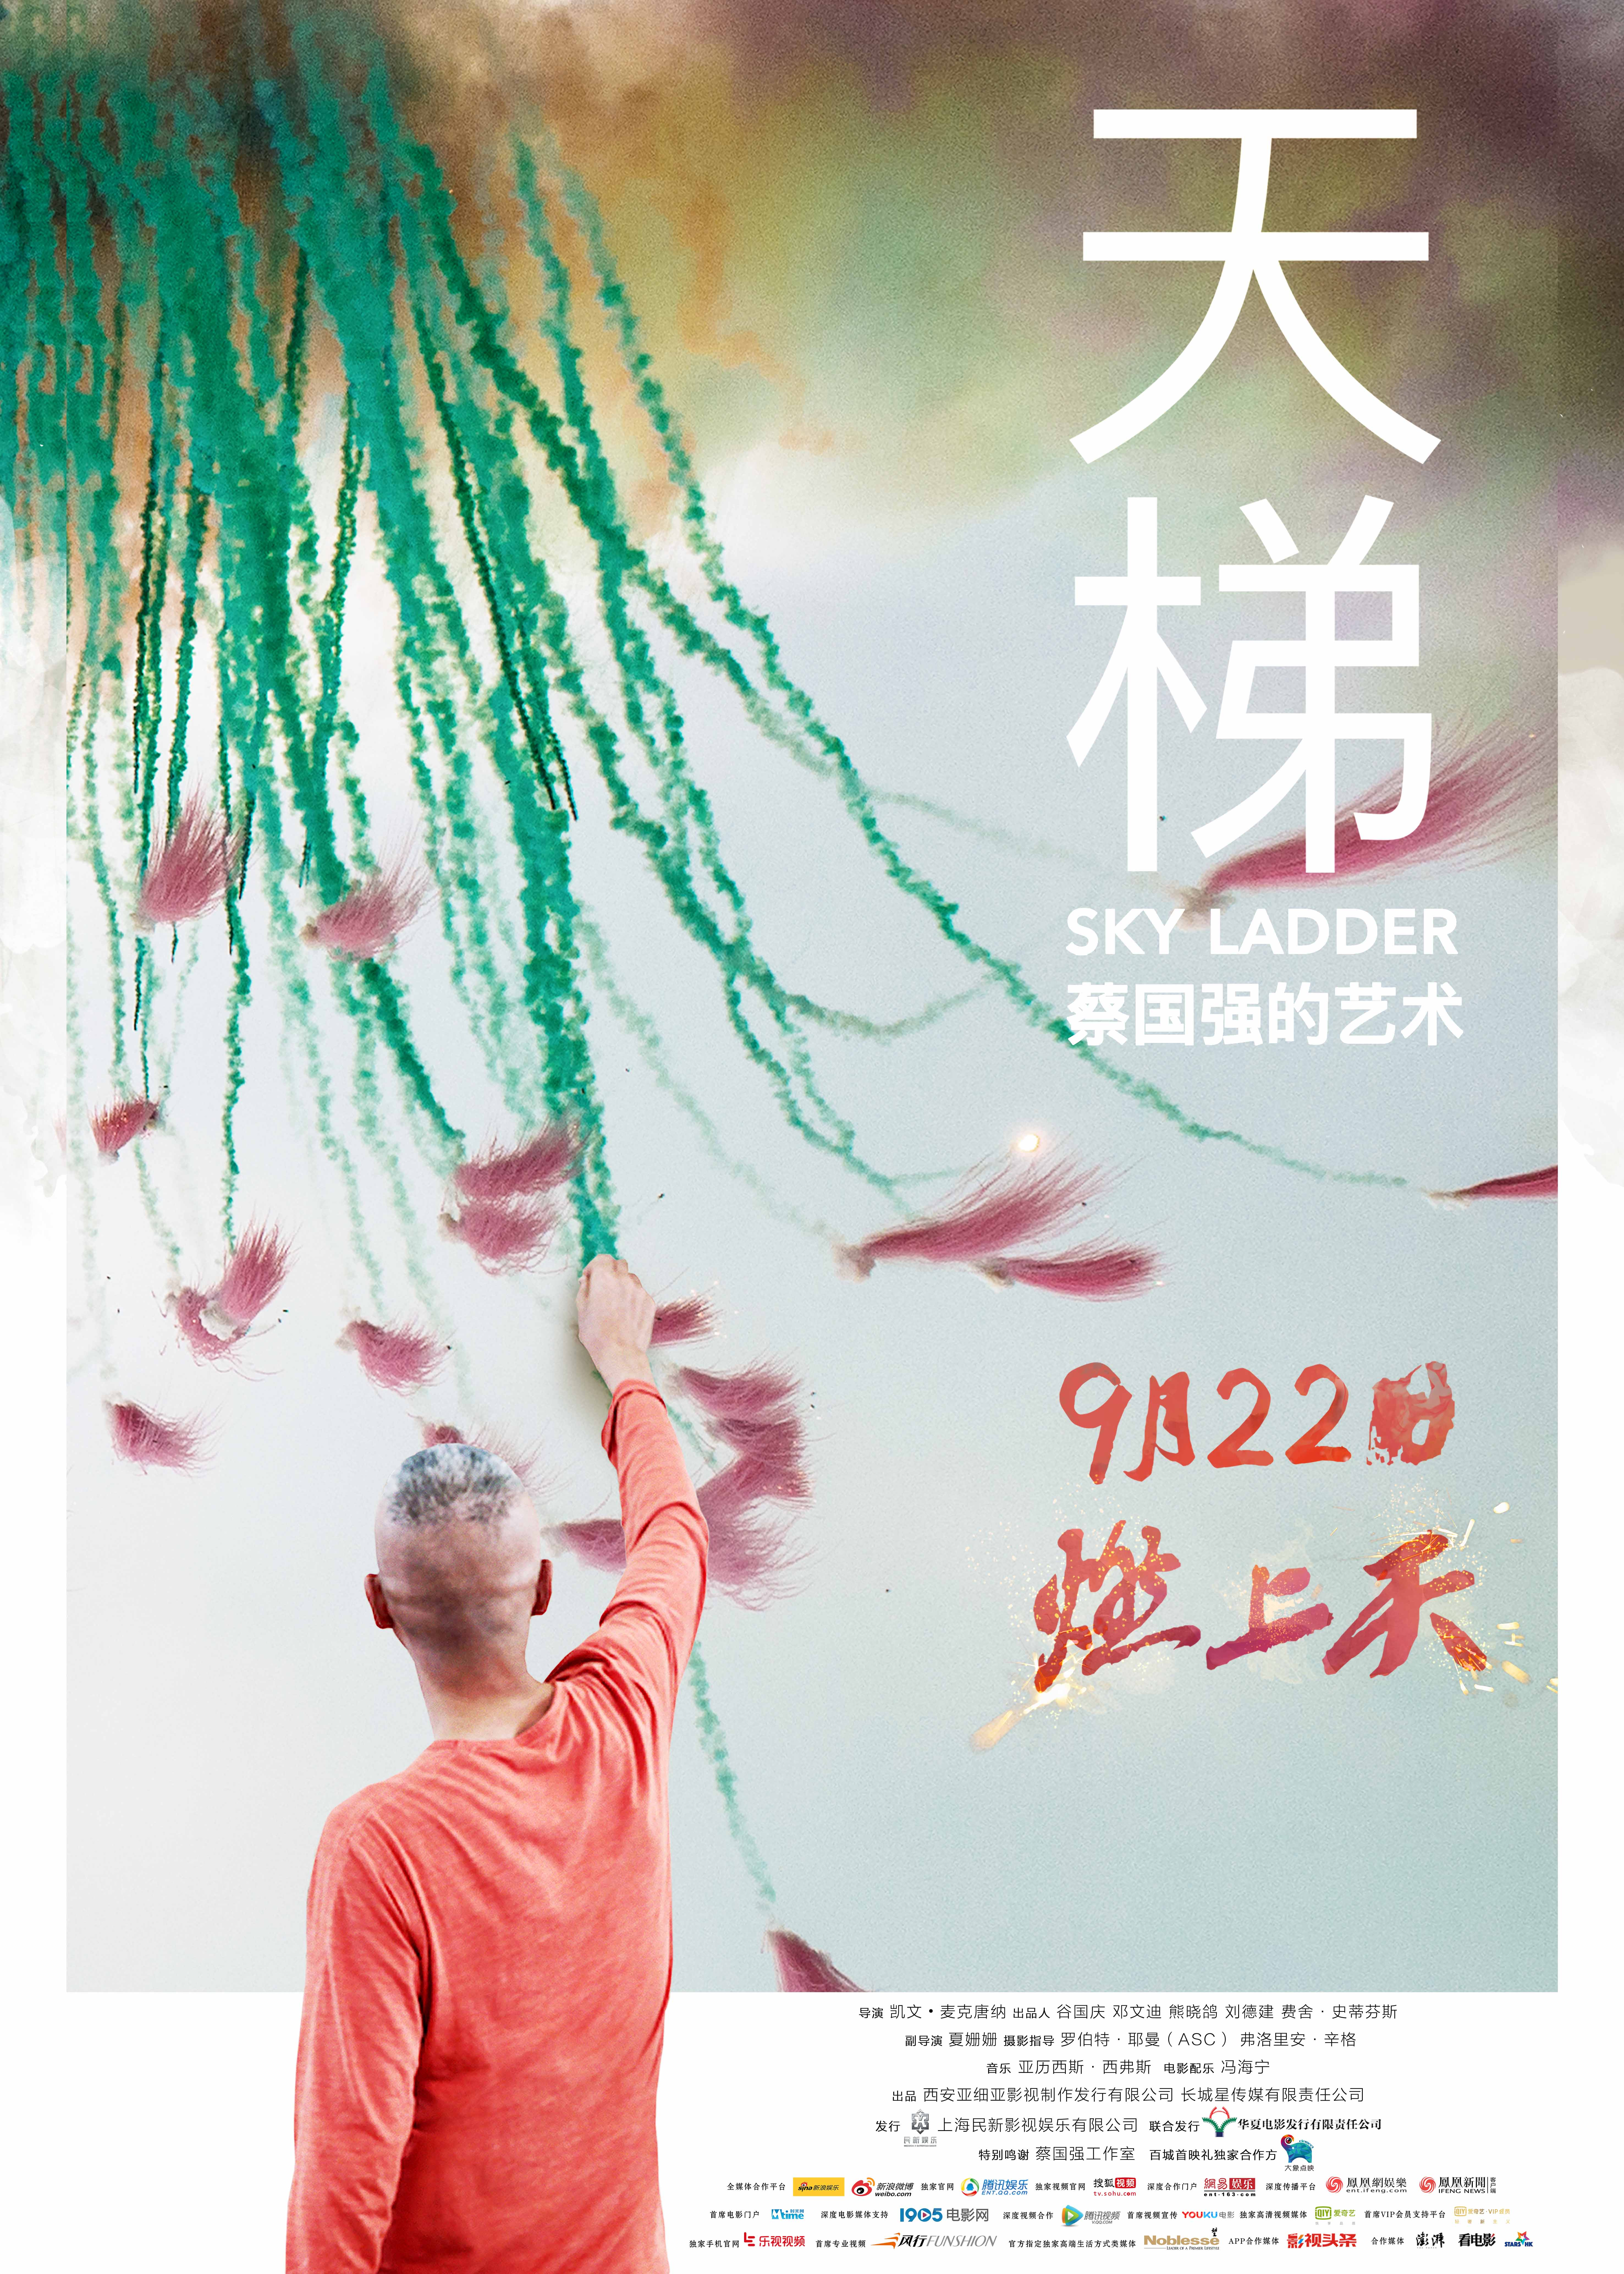 Shanghai Film Week Comes to Liverpool, UK Celebrating Twin Status Between the Cities 14th-17th October 2019